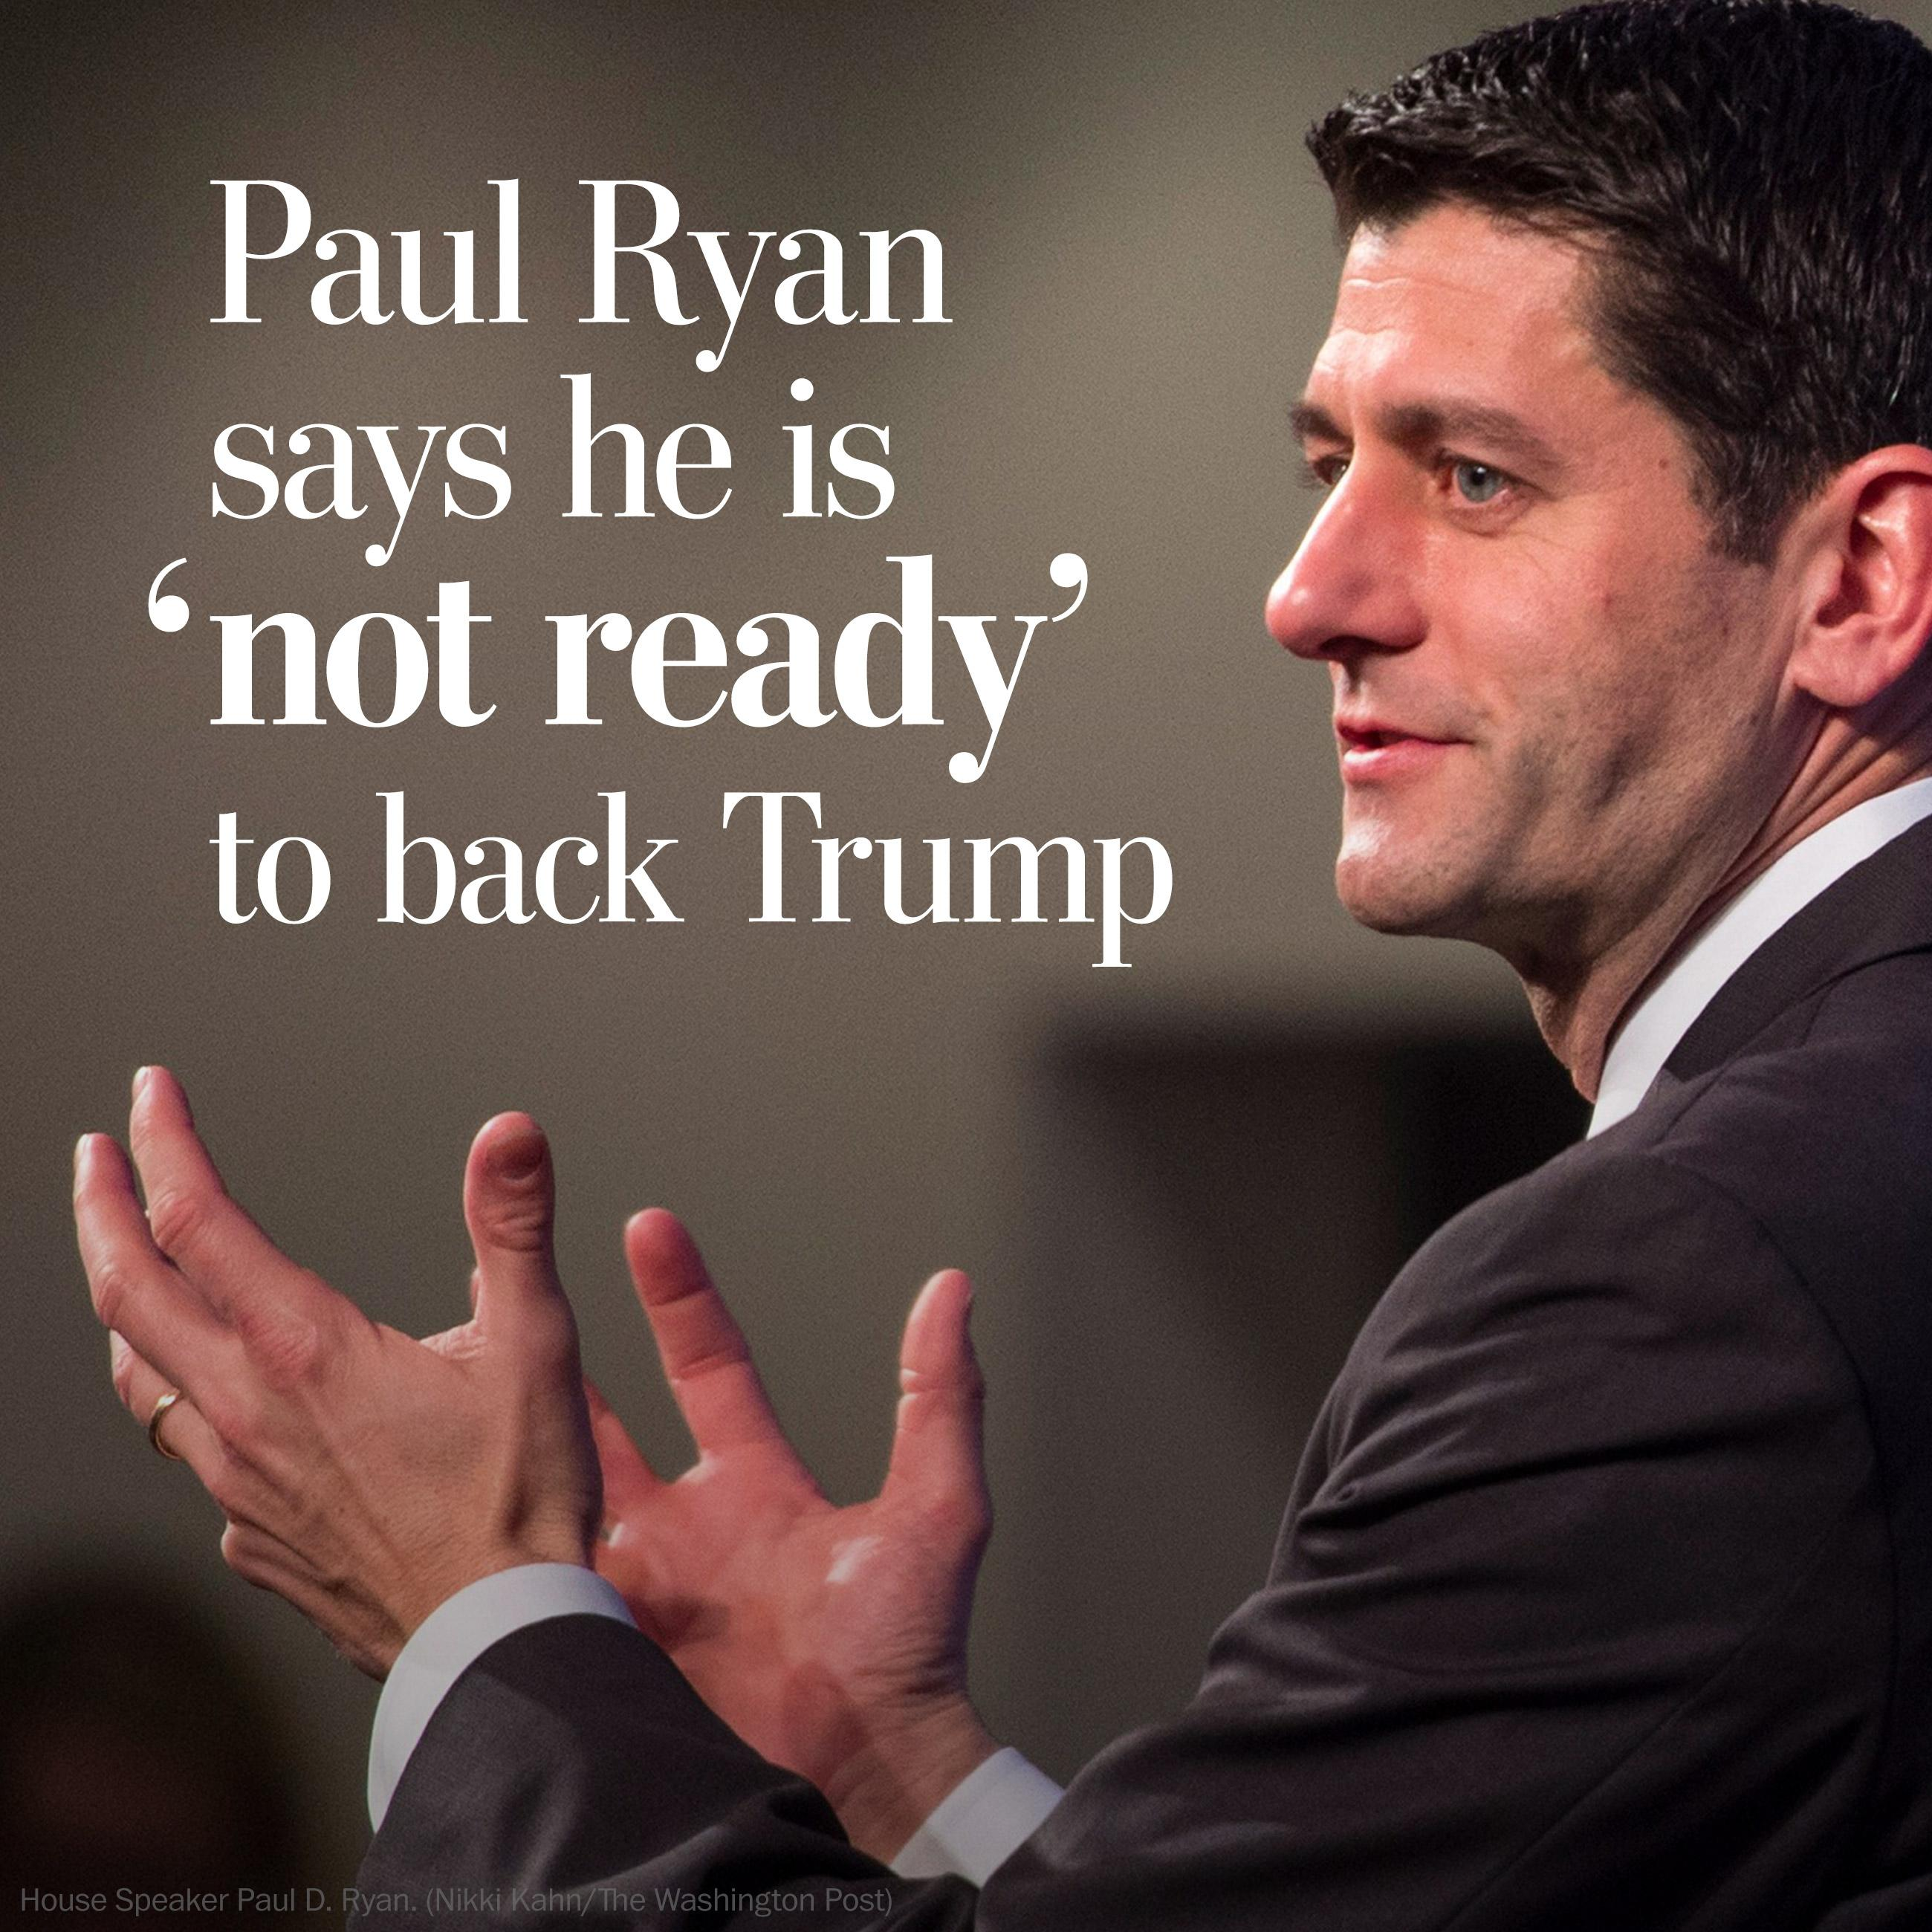 Ryan says he is 'not ready' to back Trump, deepening GOP divide